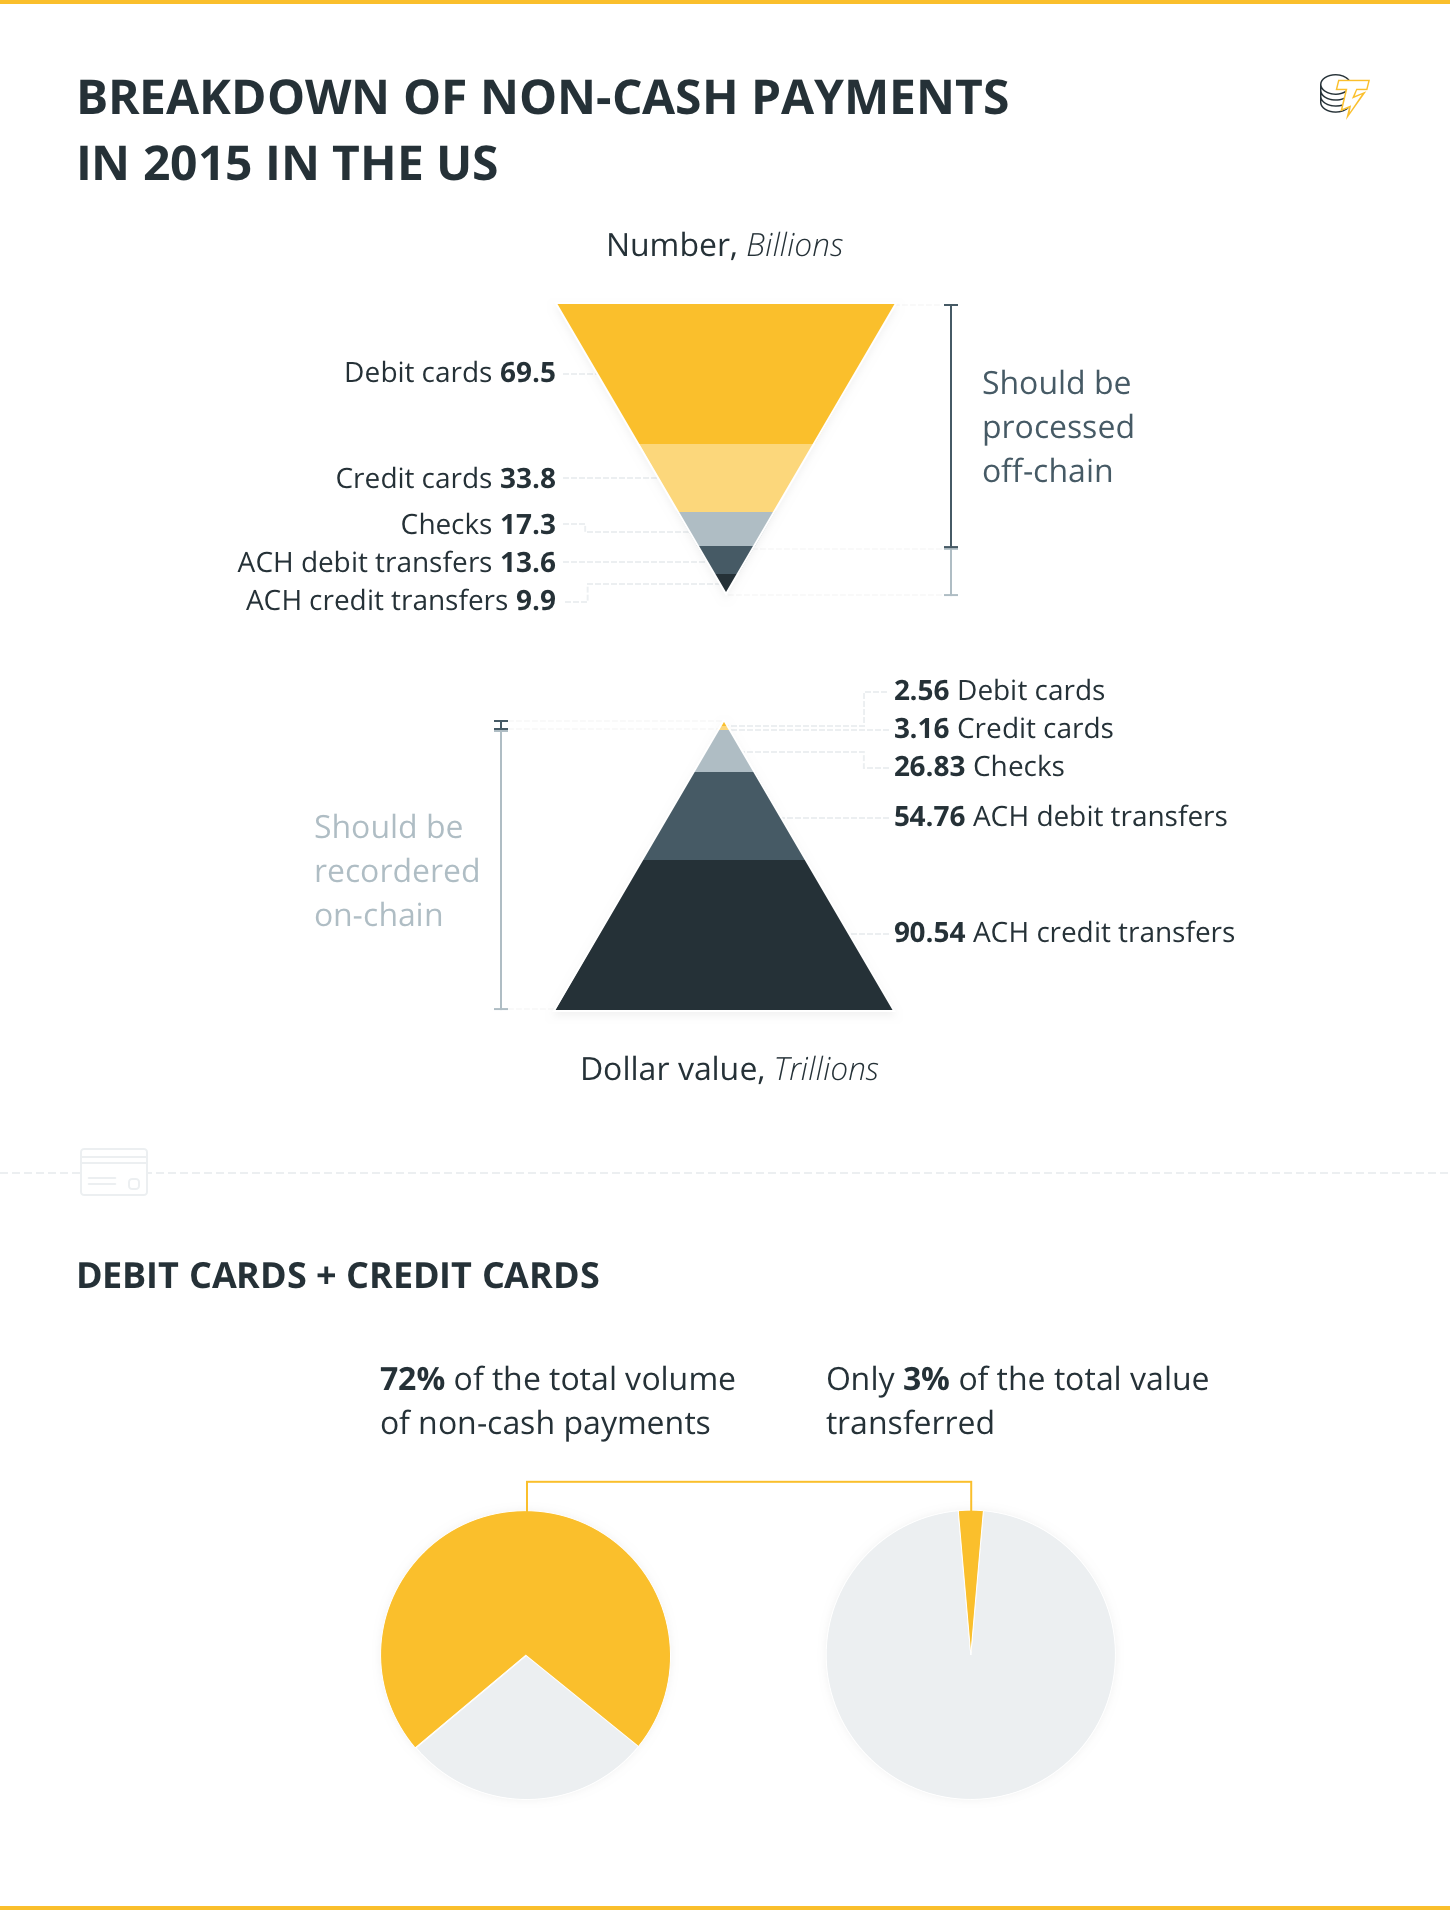 Breakdown of non-cash payments in 2015 in the US